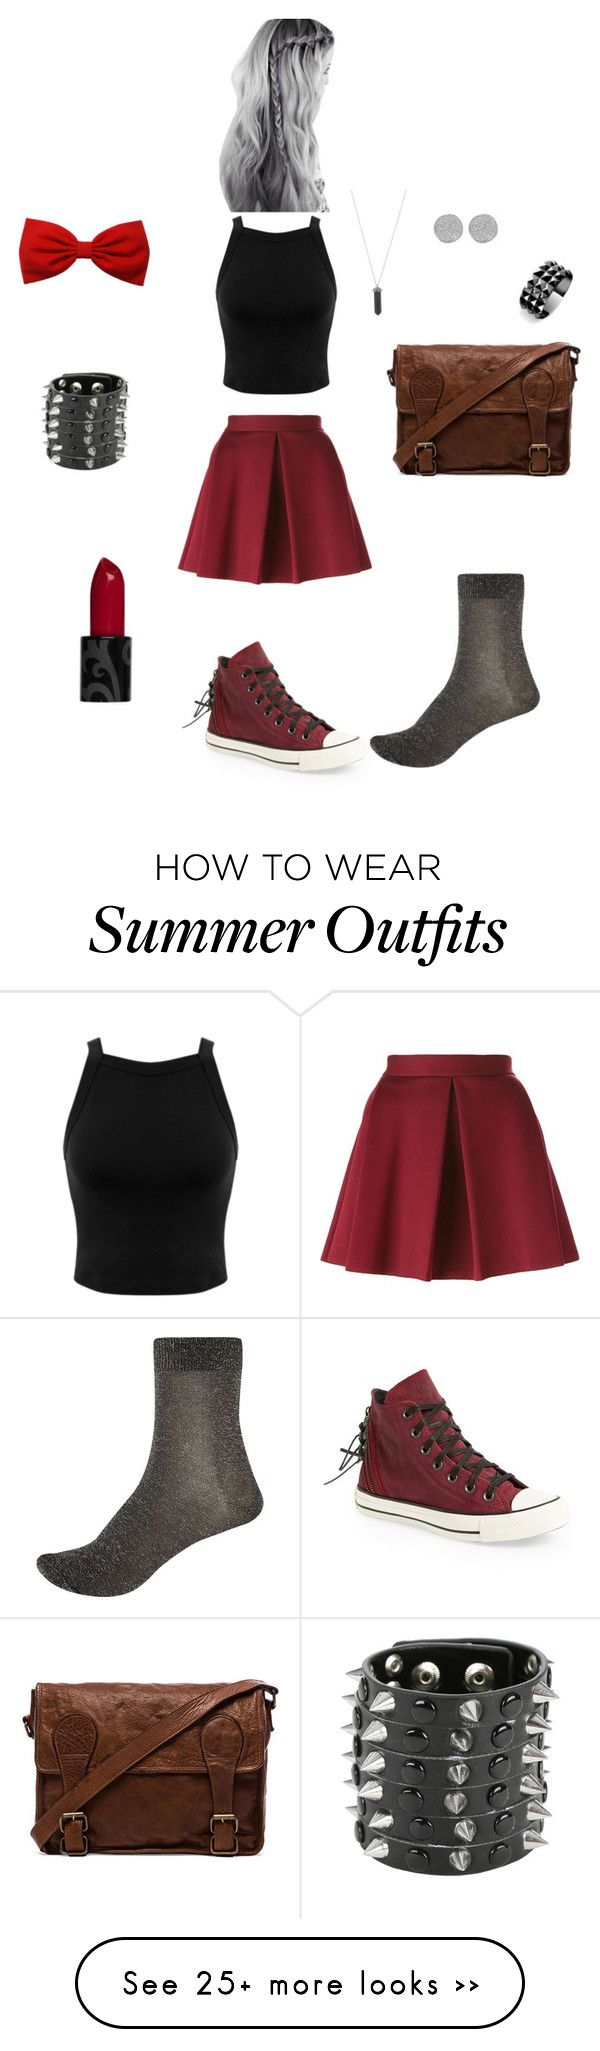 """""""Red and Black Outfit"""" by gcgrahek on Polyvore featuring Miss Selfridge, P.A.R.O.S.H., Converse, River Island, Karen Kane, VIPARO and Waterford"""